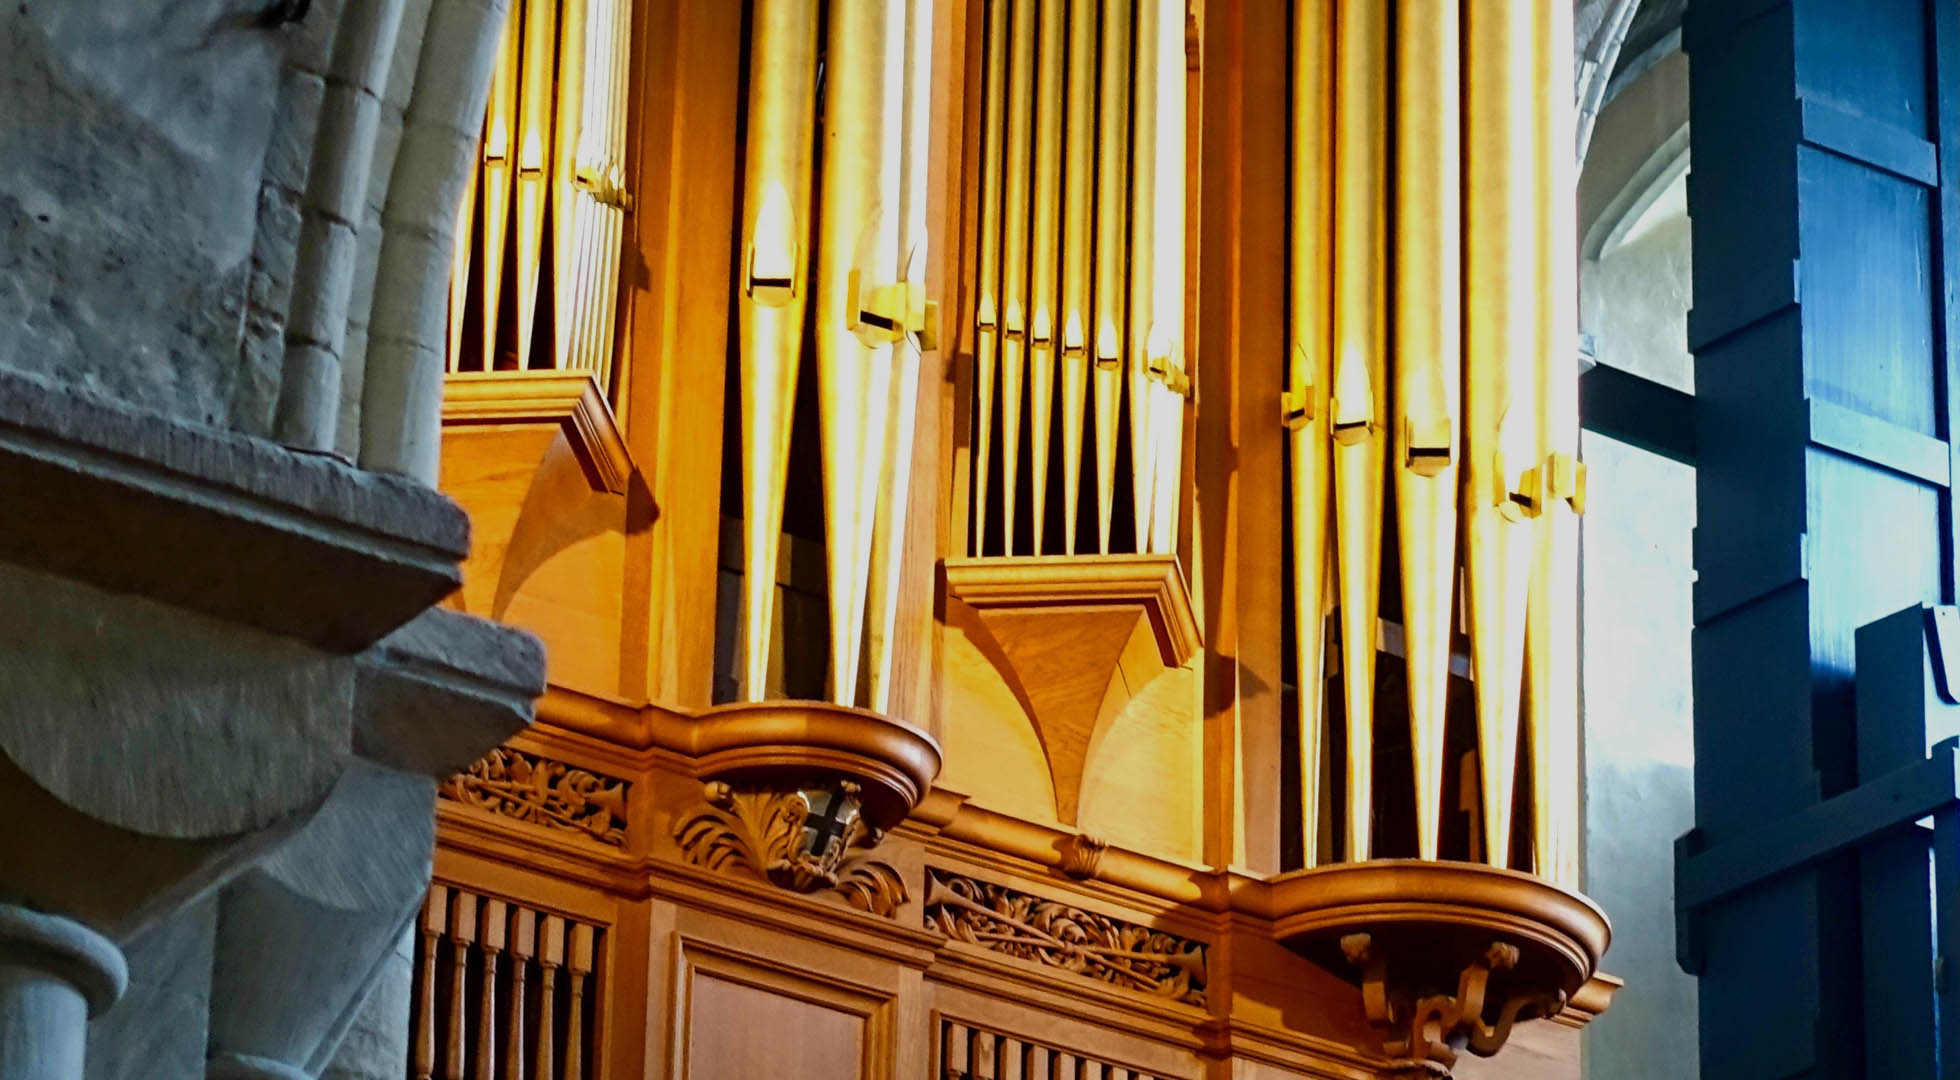 The name to trust in pipe organ repair